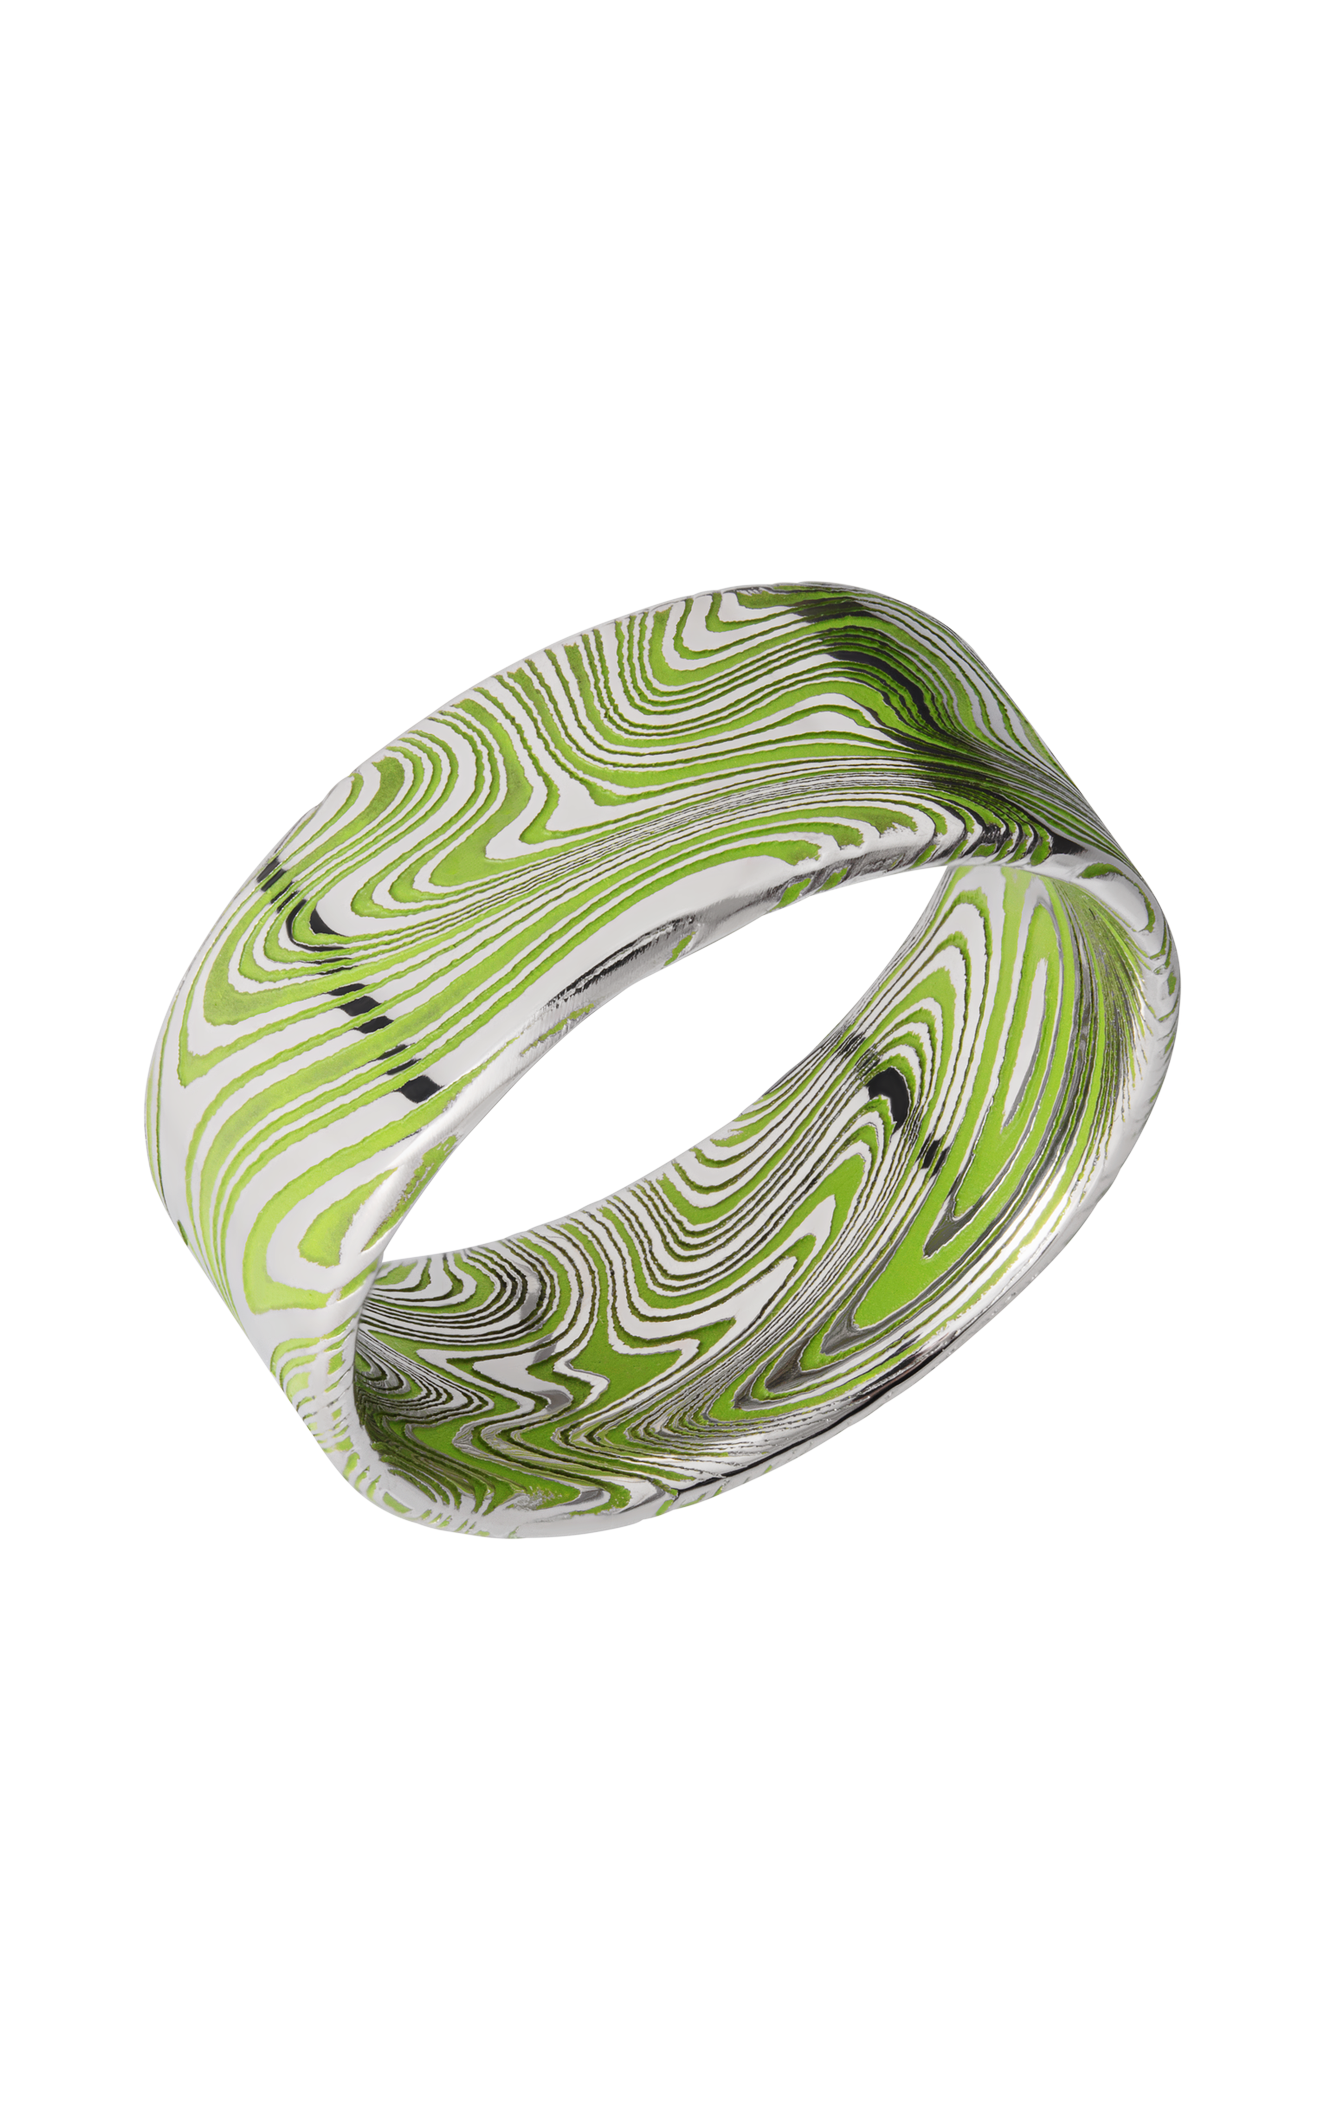 Lashbrook Damascus Steel D9FRMARBLE_ZOMBIEGREENALL product image